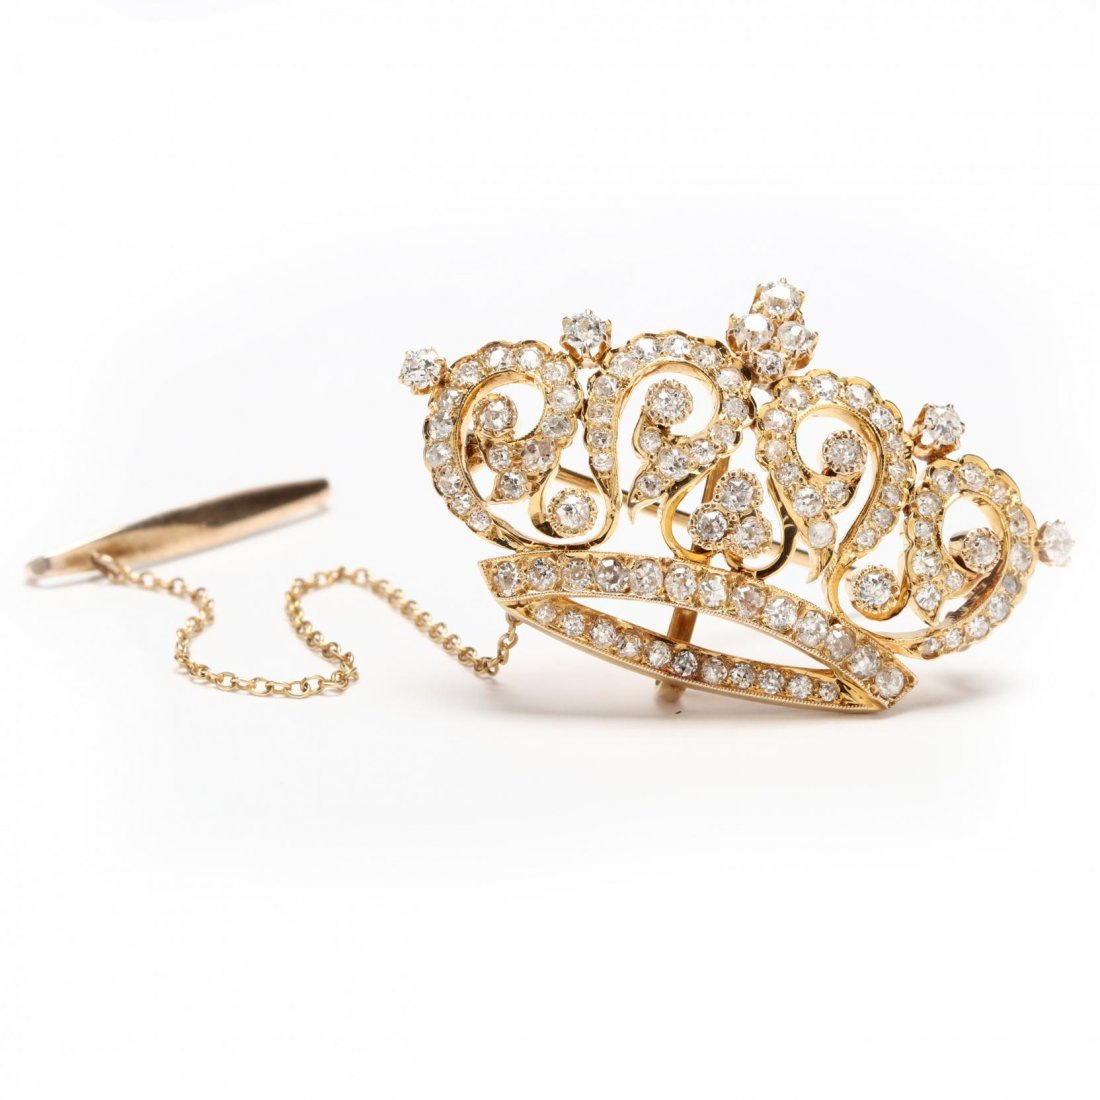 14KT Gold and Diamond Crown Brooch